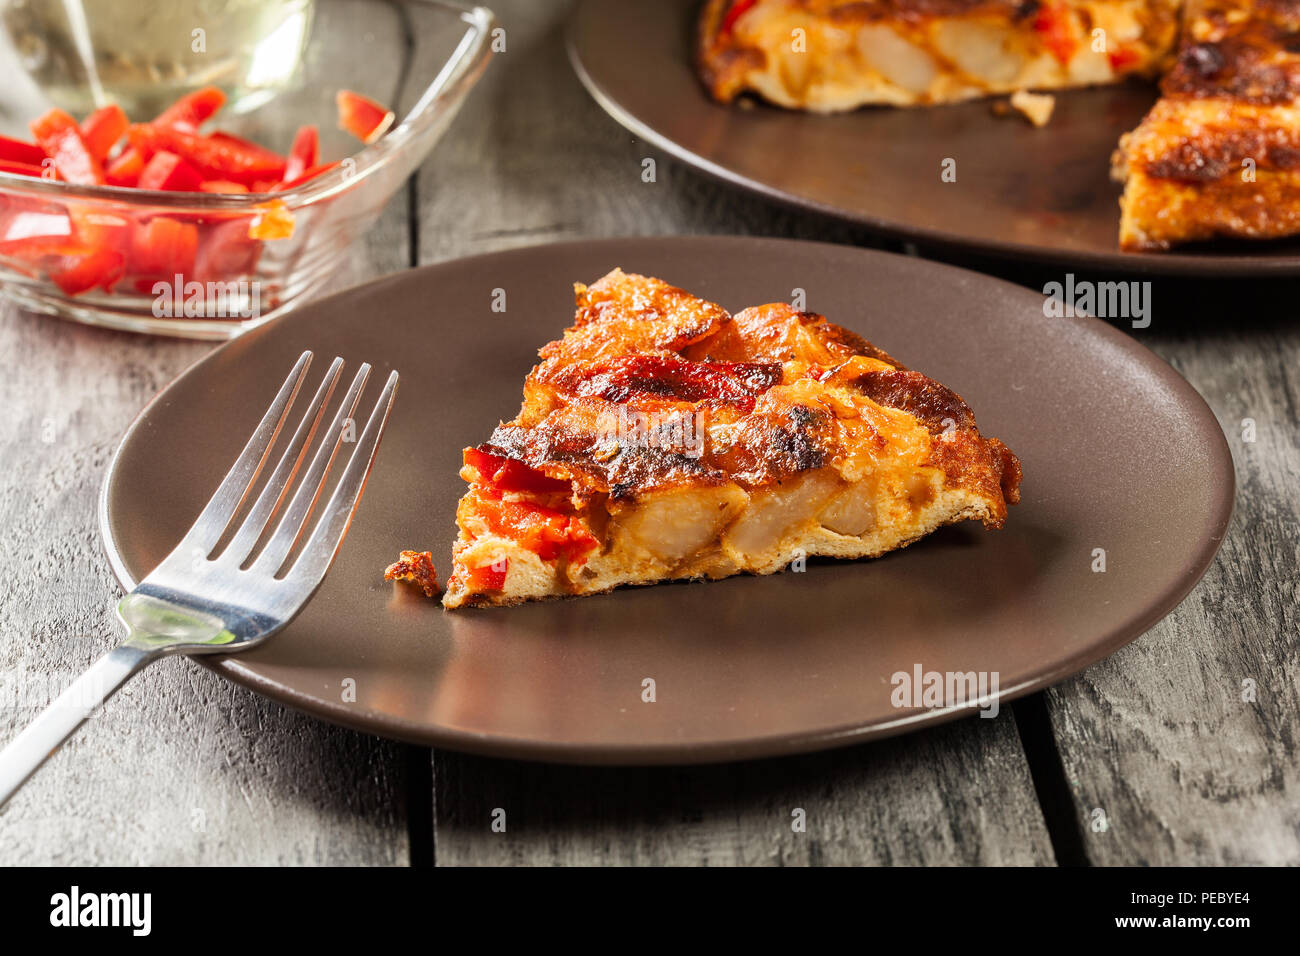 Tortilla de patatas. Spanish omelette with sausage chorizo, potatoes, paprika and egg, accompanied by olive oil. Spanish cuisine - Stock Image